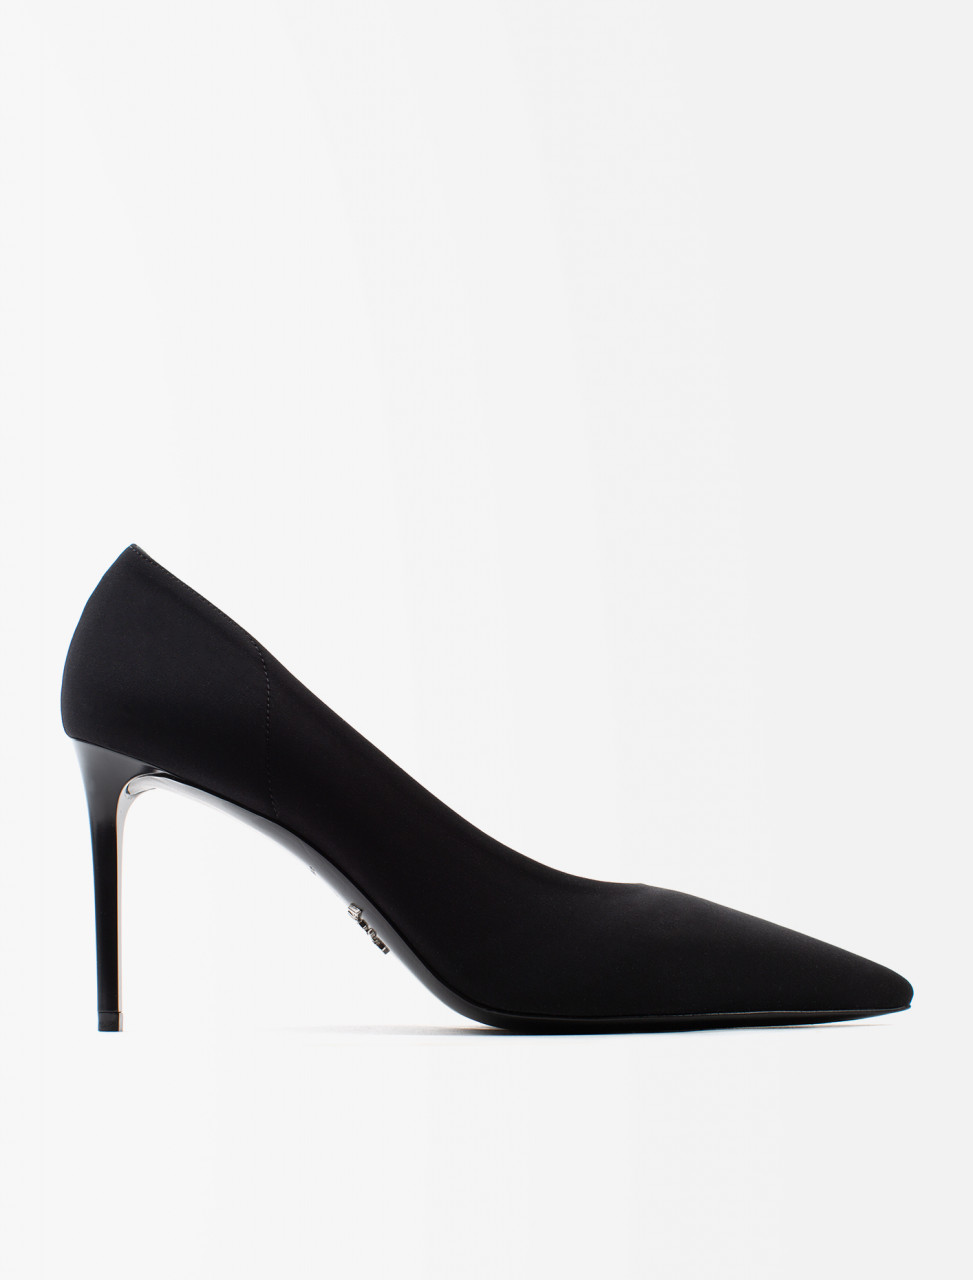 Black Fabric Pump